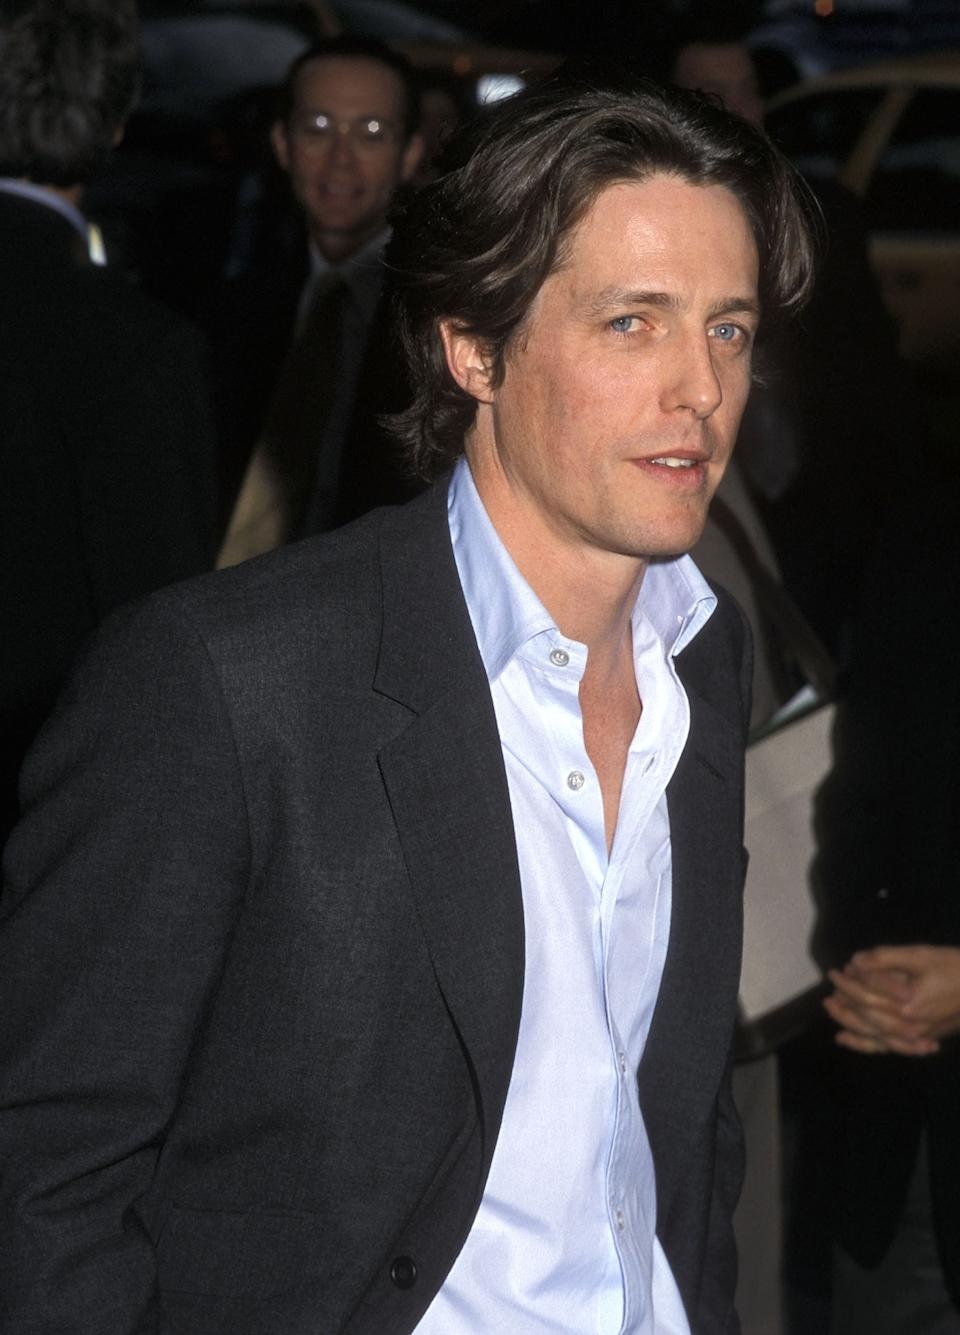 """Actor Hugh Grant attends the """"Small Time Crooks"""" New York City Premiere on May 16, 2000 at the Beekman Theater in New York City. (Photo by Ron Galella/Ron Galella Collection via Getty Images)"""